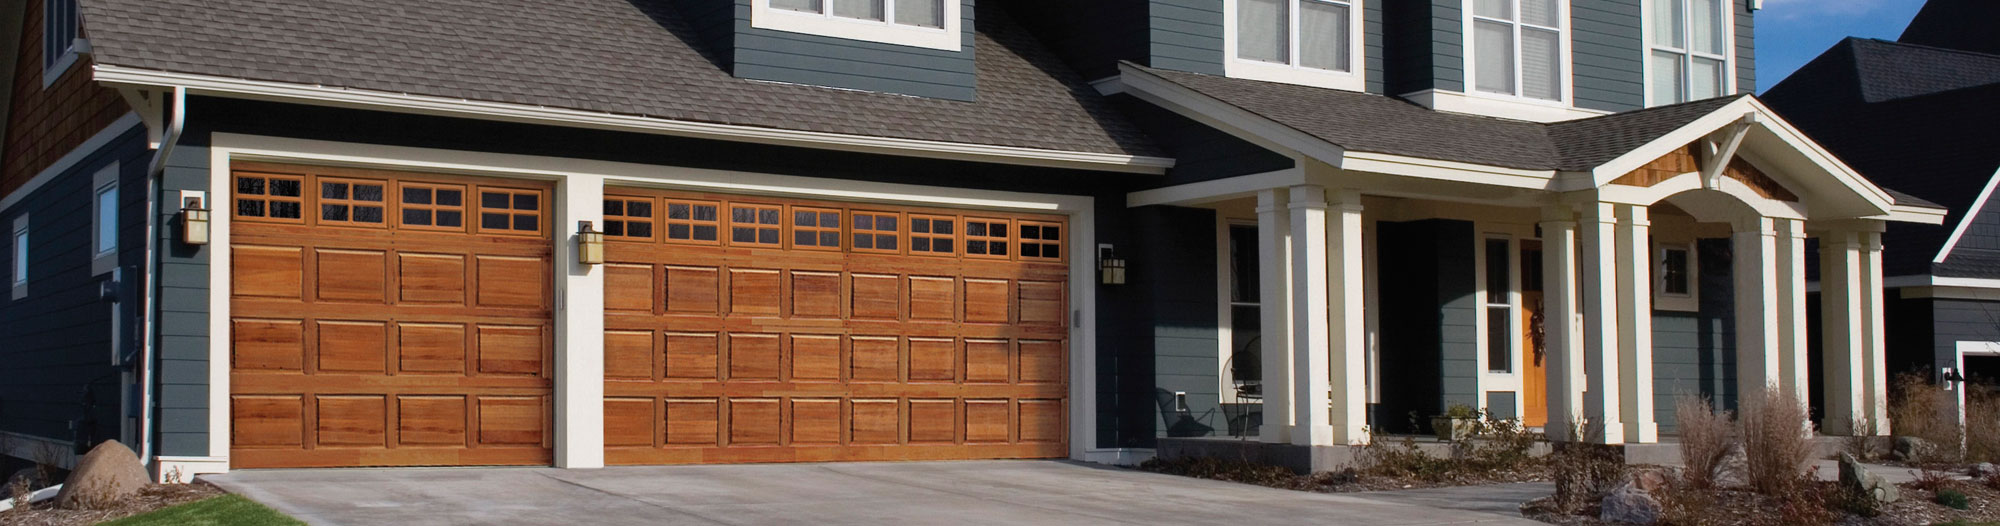 Garage Door Products Installation Authorized Clopay Dealer